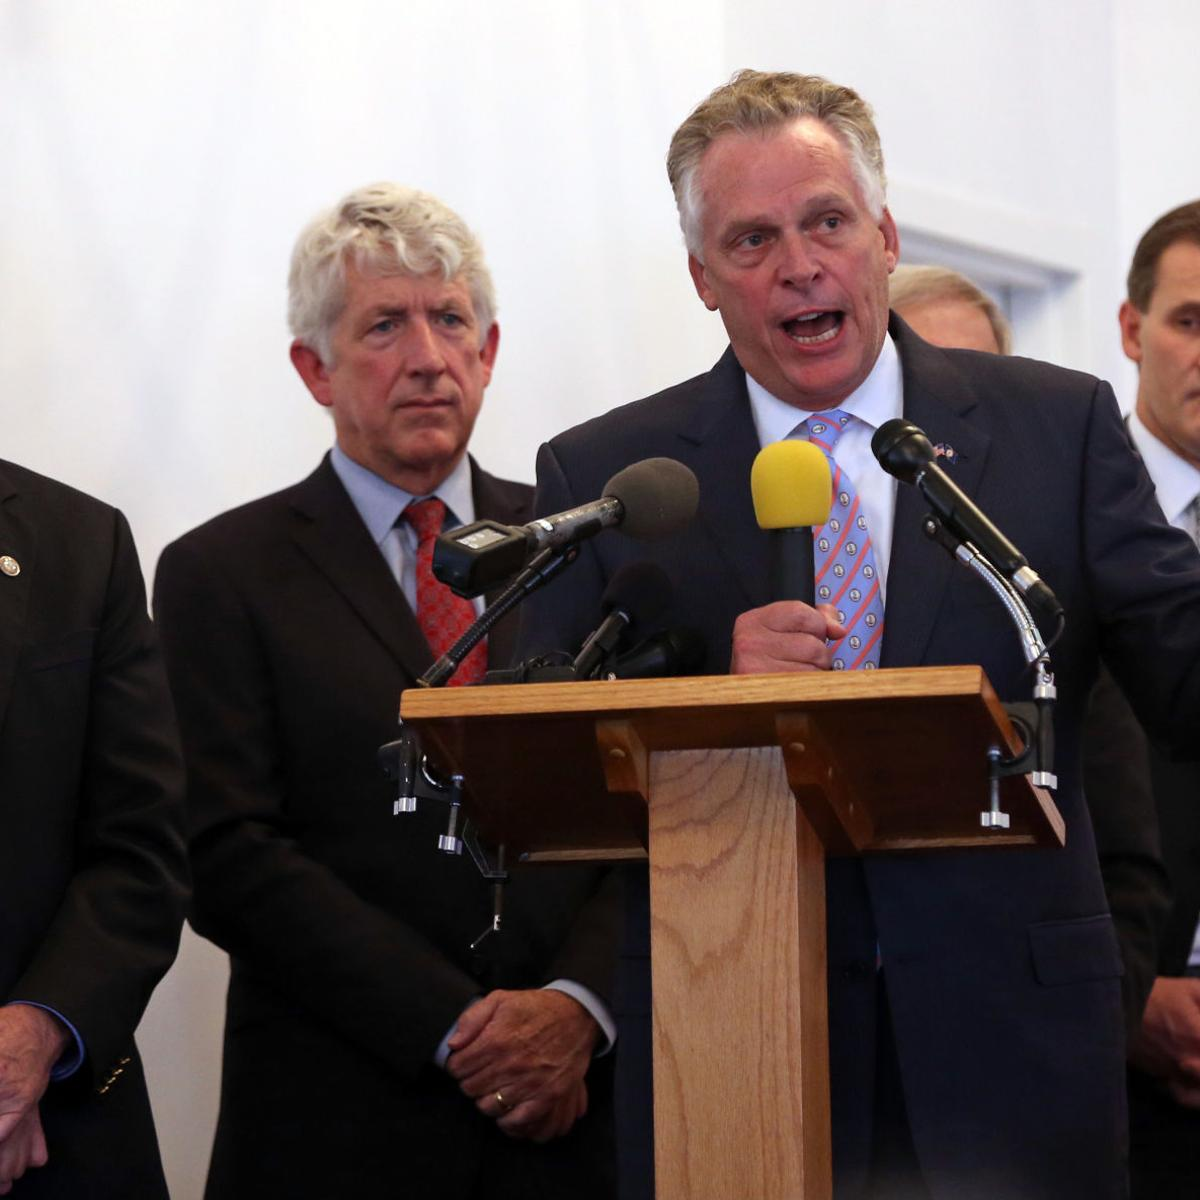 McAuliffe, others offer words of hope at local church services ...